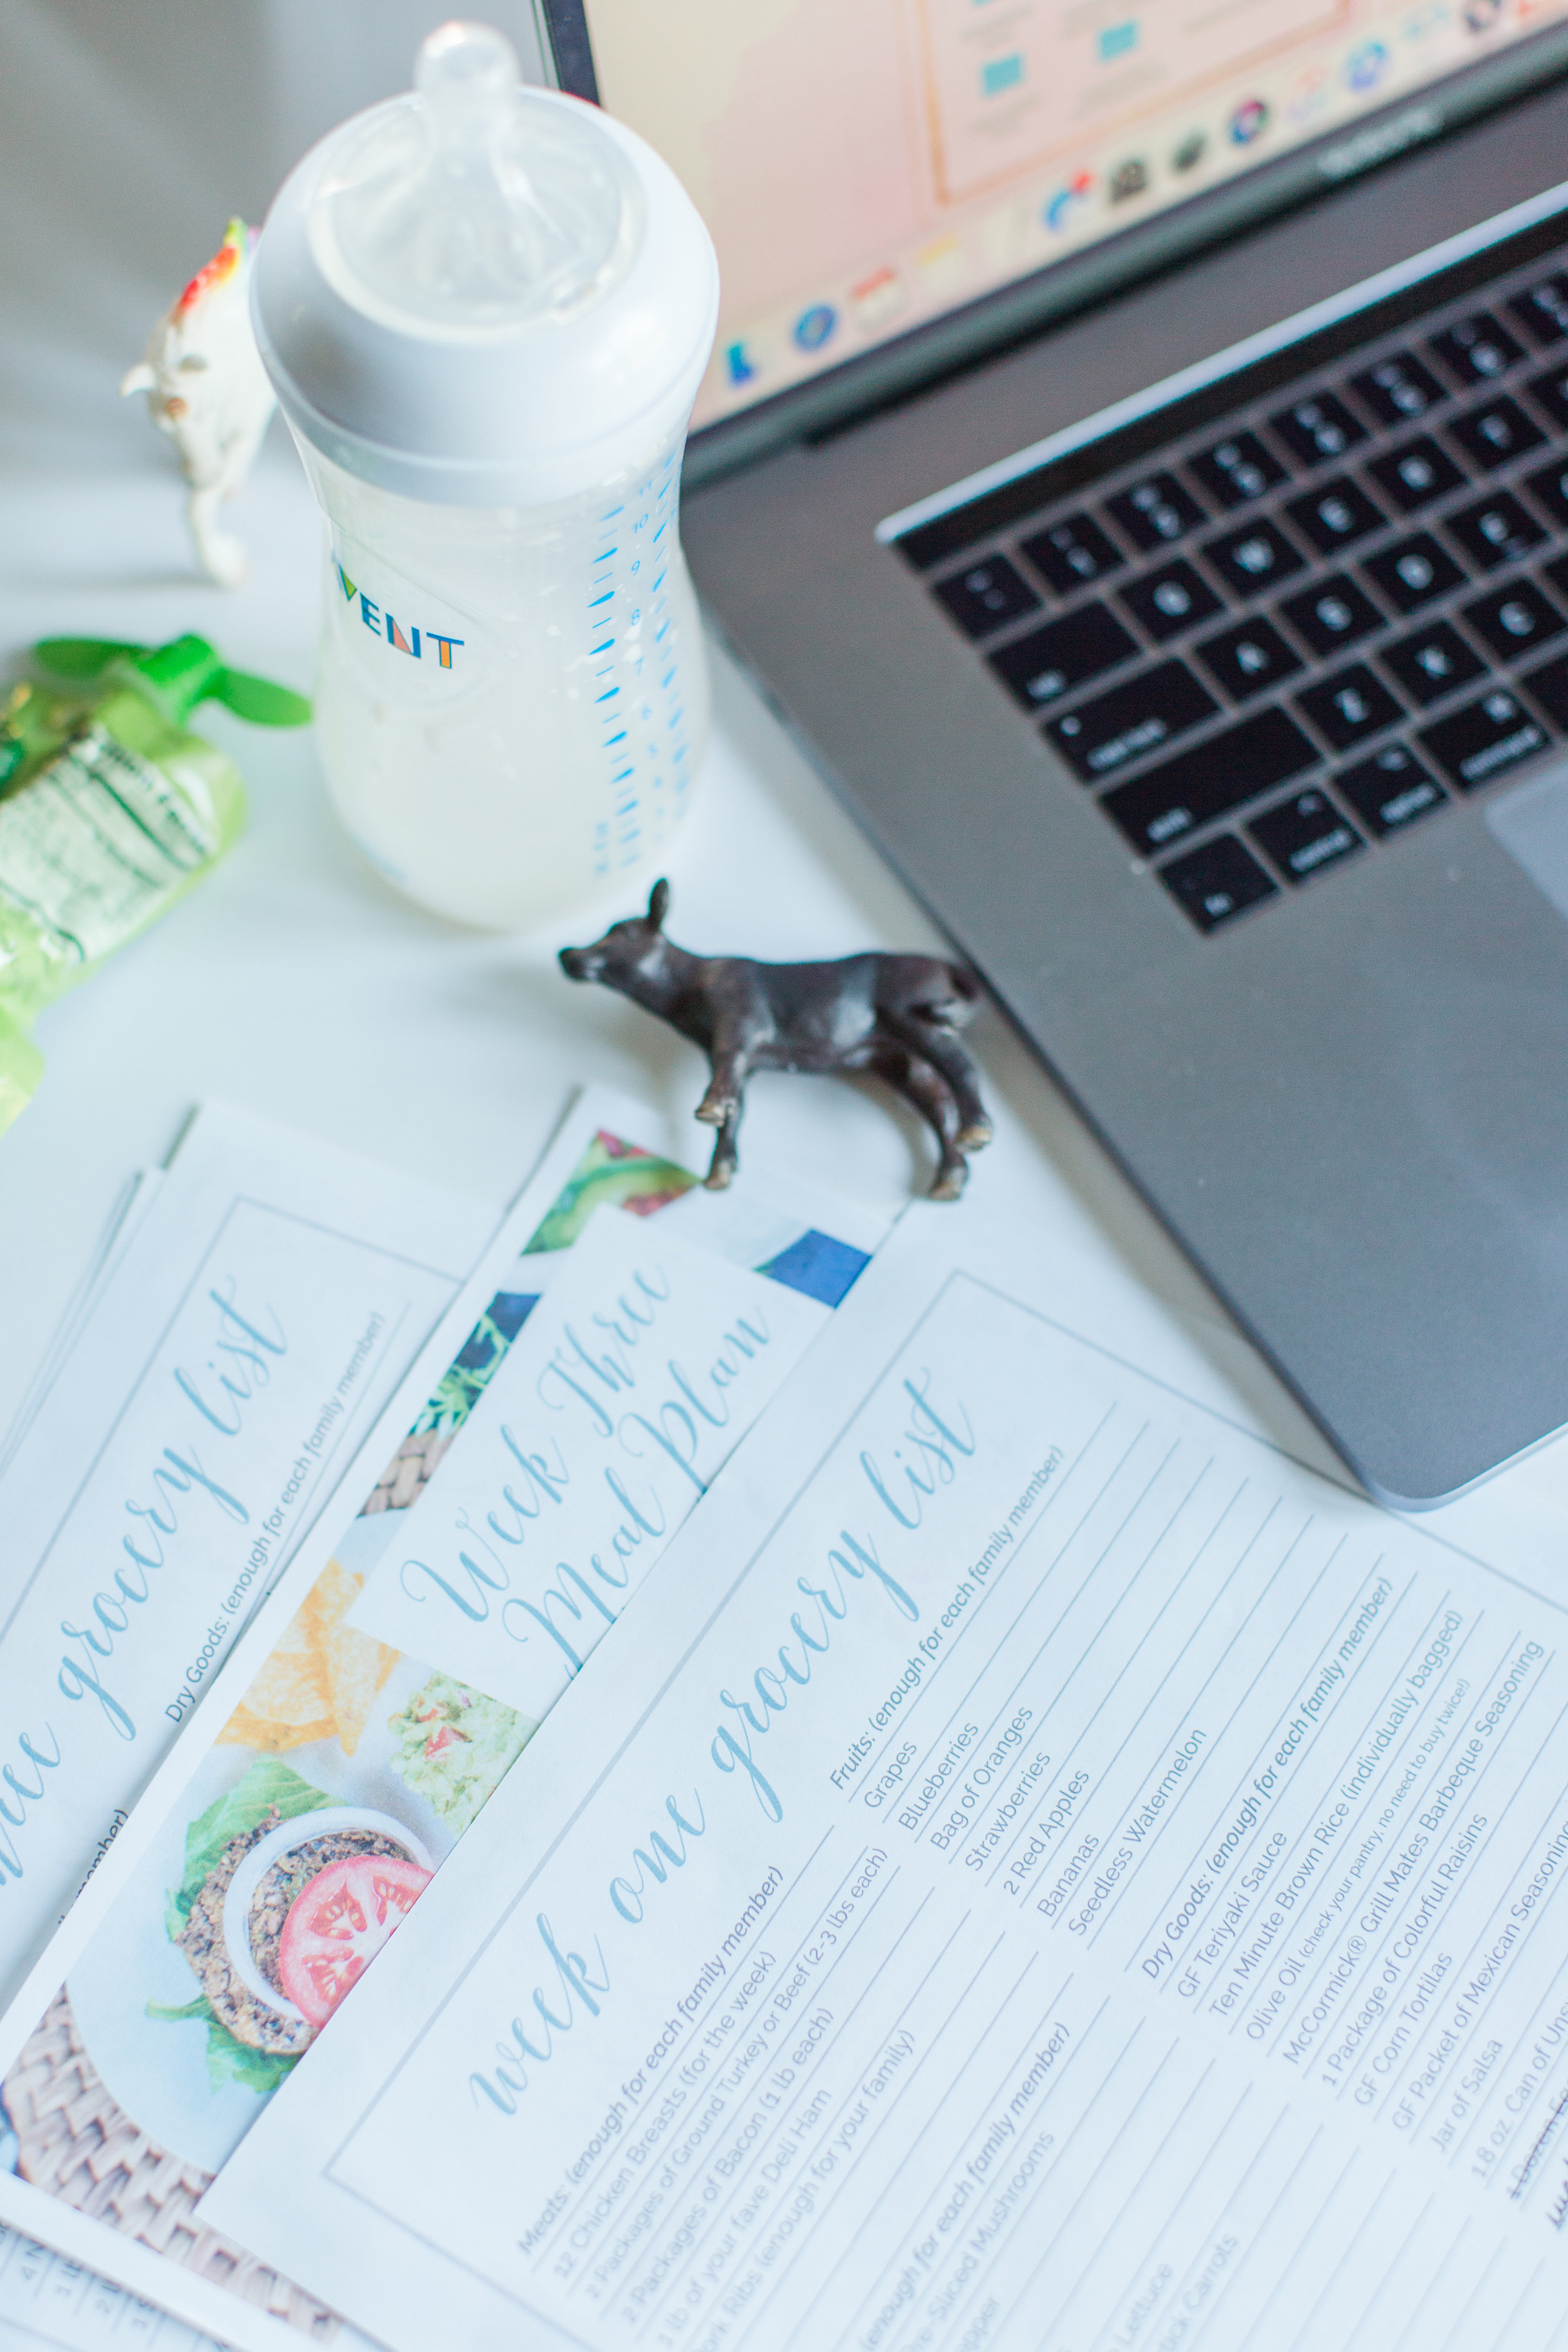 Meal planning is a life changer! - Sign up and I'll send you a resource that will jump start a new healthy habit!